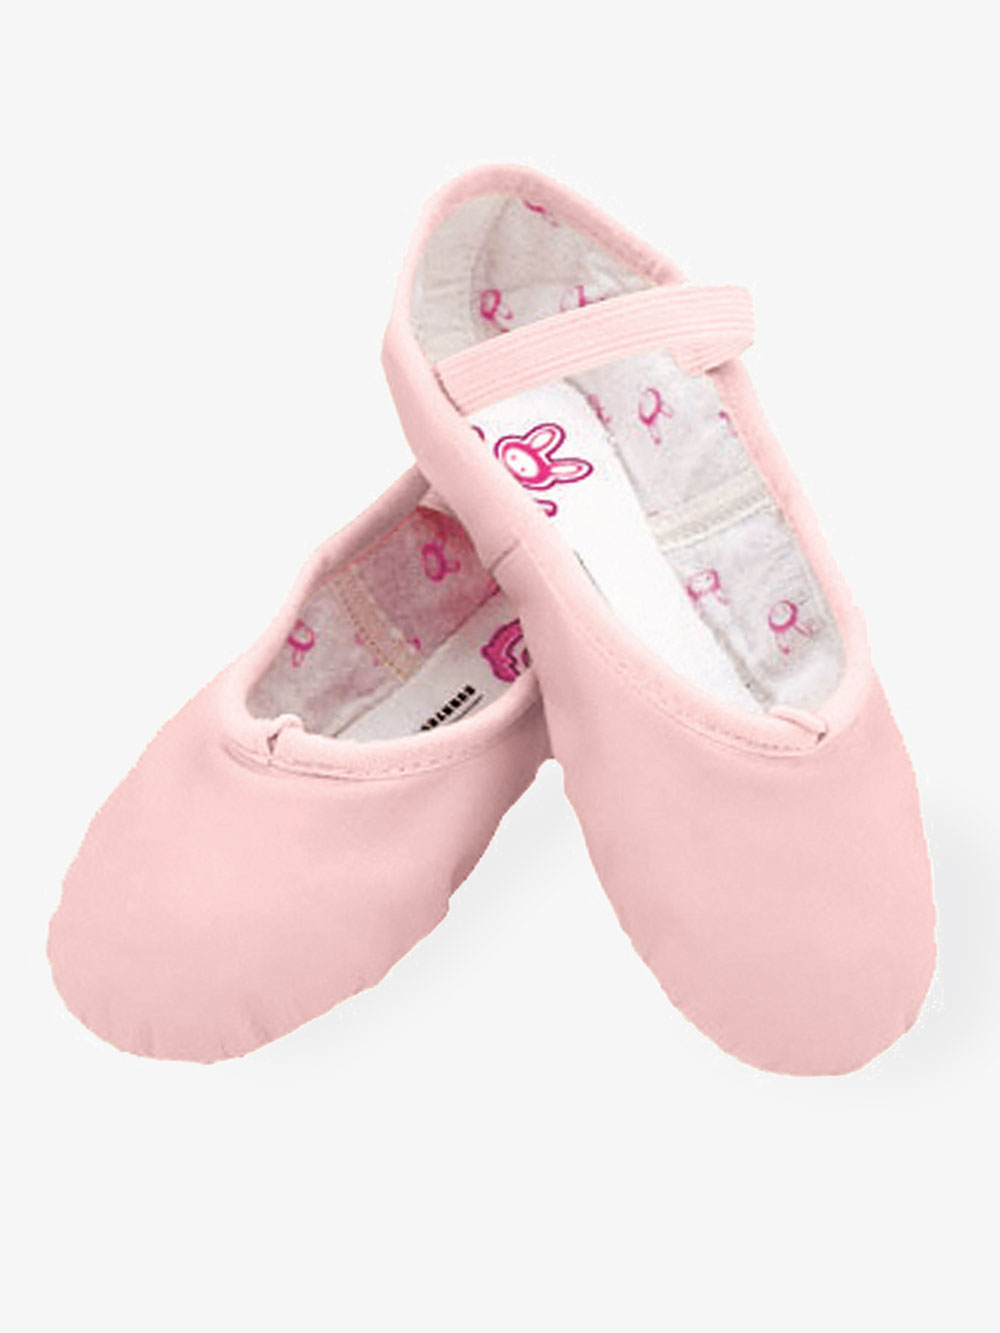 PINK 2 B US Little Kid Bloch Dance Girls Bunnyhop Full Sole Leather Ballet Slipper//Shoe Dance